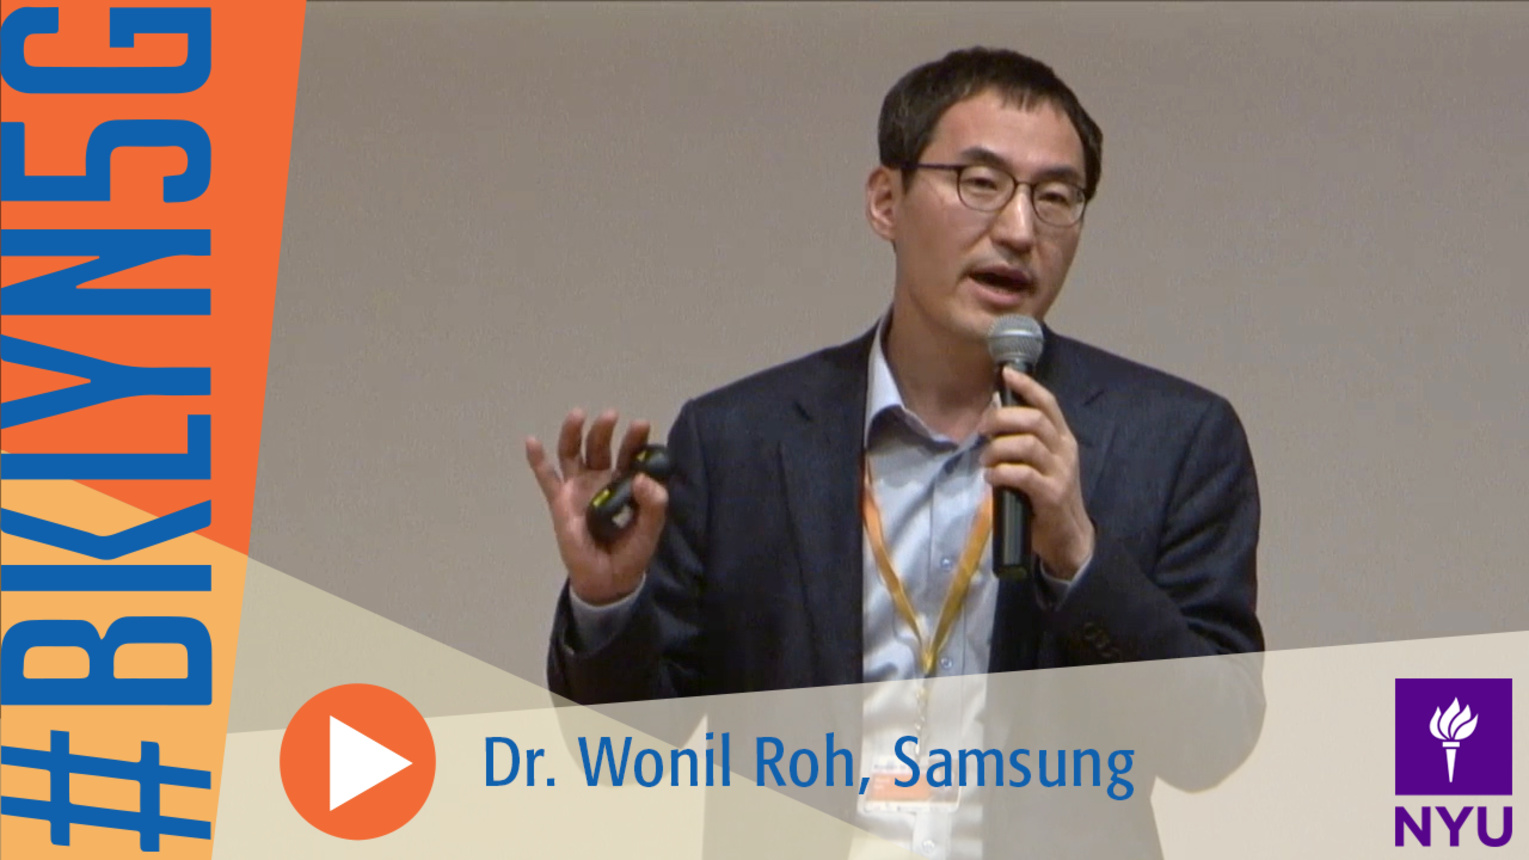 Brooklyn 5G Summit 2014: 5G Key Enabling Technologies by Dr. Wonil Roh